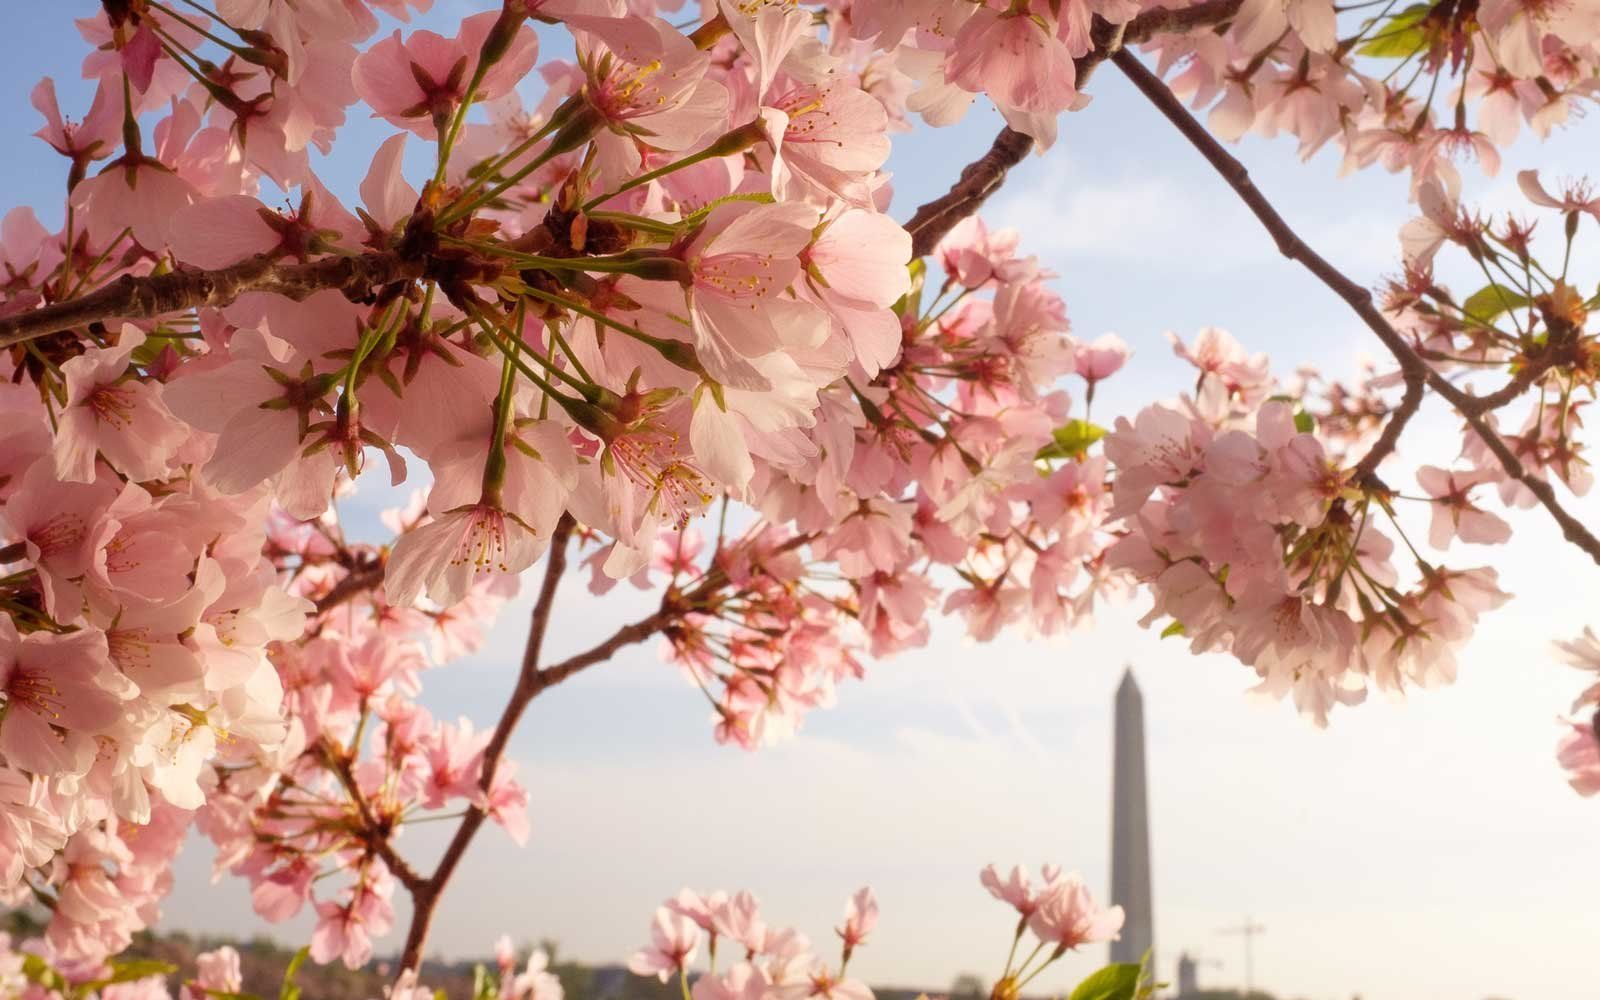 Cherry blossom forecast 2018 washington d c festival Cherry blossom pictures